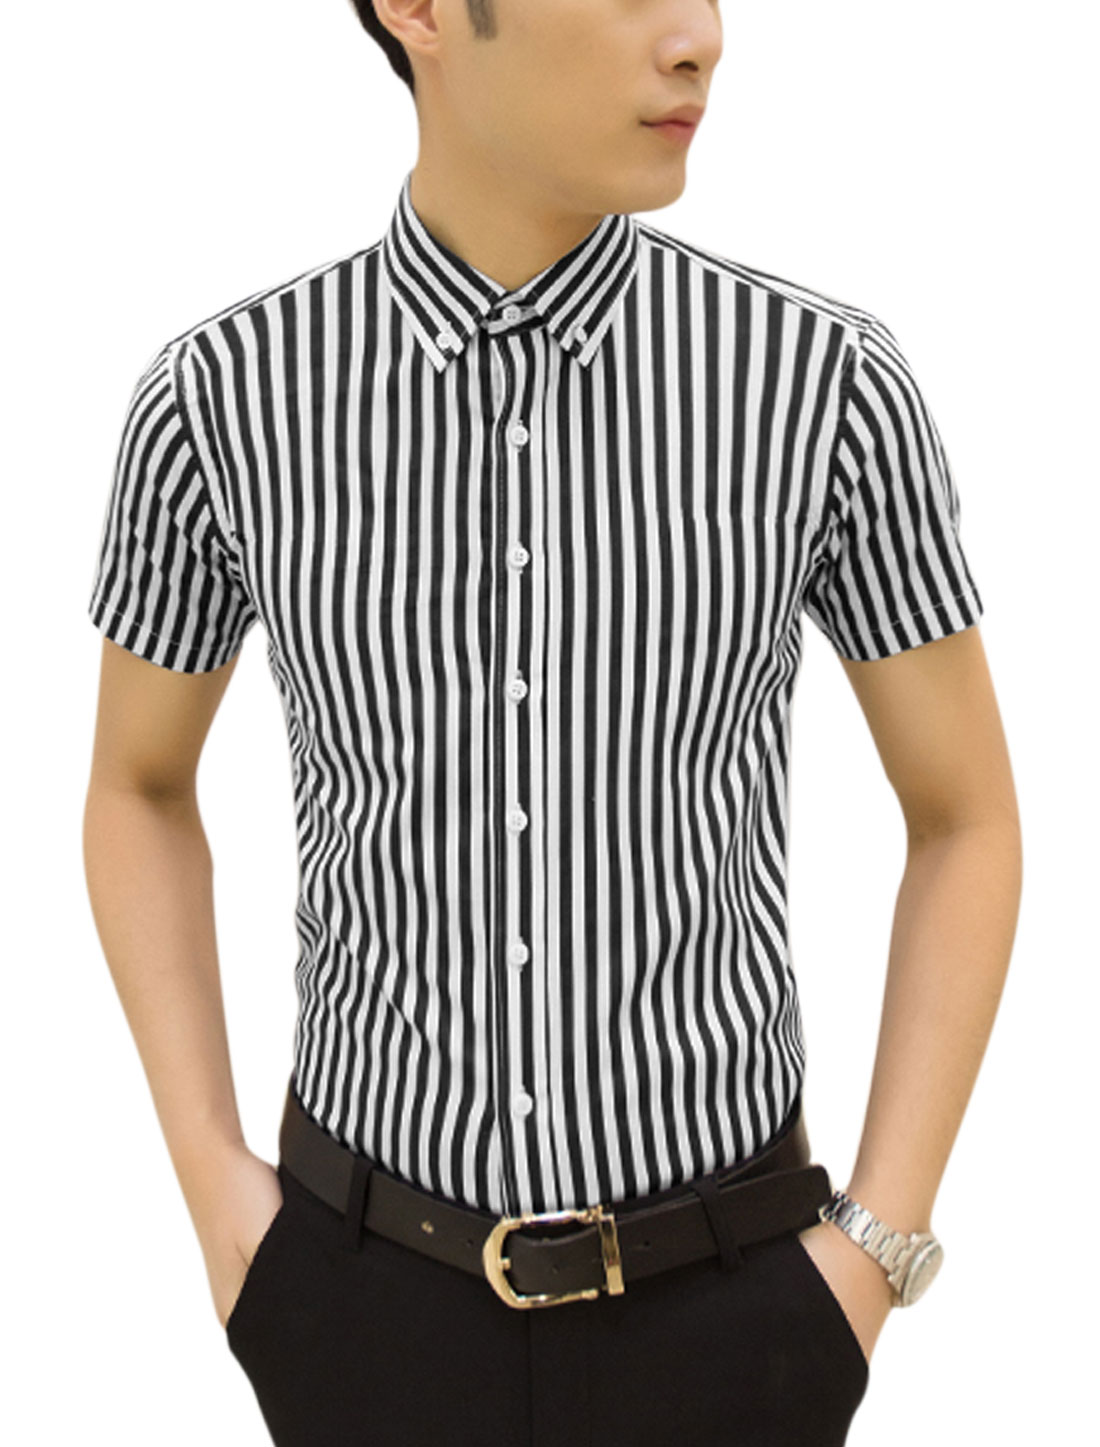 Men Point Collar Short Sleeves Striped Casual Shirts Navy Blue White M